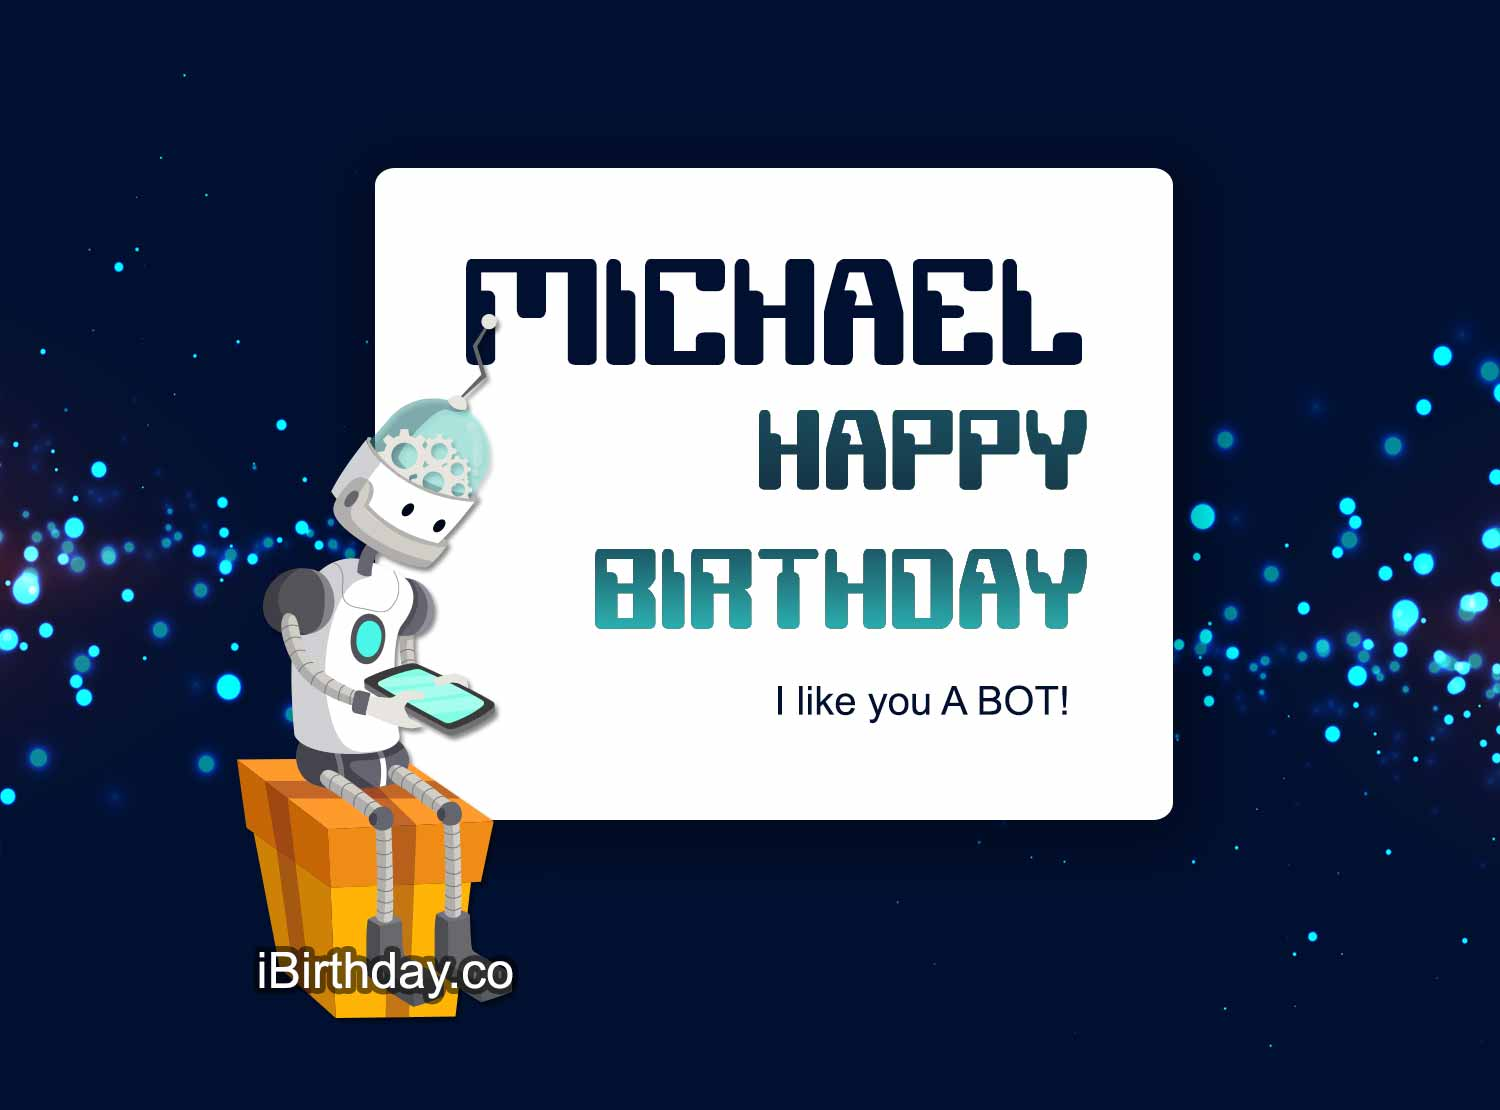 Michael Robot Birthday Meme